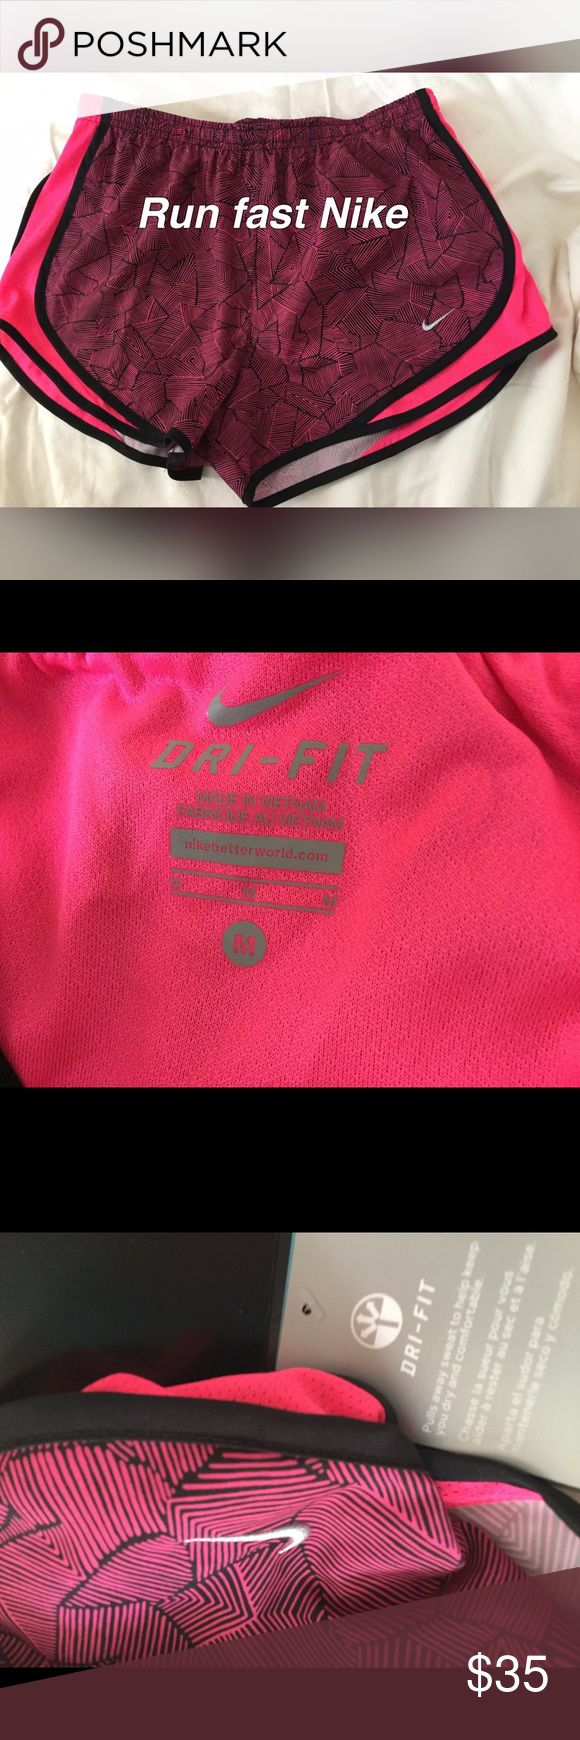 Nike NWT Women's dry fast electric-hot pink shorts Nike women's hot pink running shorts, lined, NWT size M. Tempo Equilibrium shorts. Nike Shorts